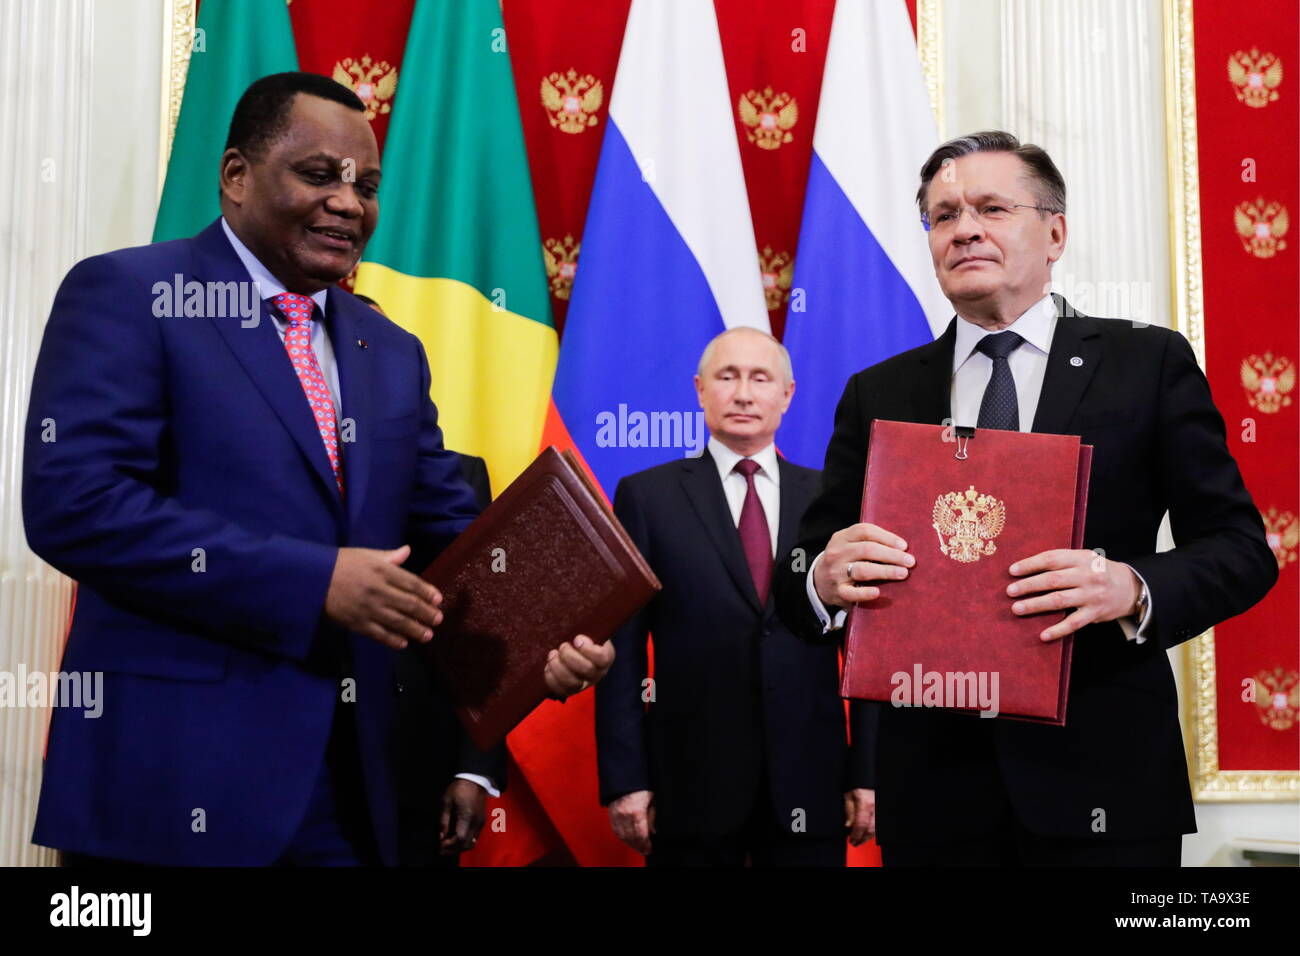 Moscow, Russia. 23rd May, 2019. MOSCOW, RUSSIA - MAY 23, 2019: Rosatom CEO Alexei Likhachev (R front) shakes hands with a Congolese official at a ceremony attended by Russia's President Vladimir Putin (R back) to sign joint documents on Russian-Congolese talks at the Moscow Kremlin. Mikhail Metzel/TASS Credit: ITAR-TASS News Agency/Alamy Live News - Stock Image